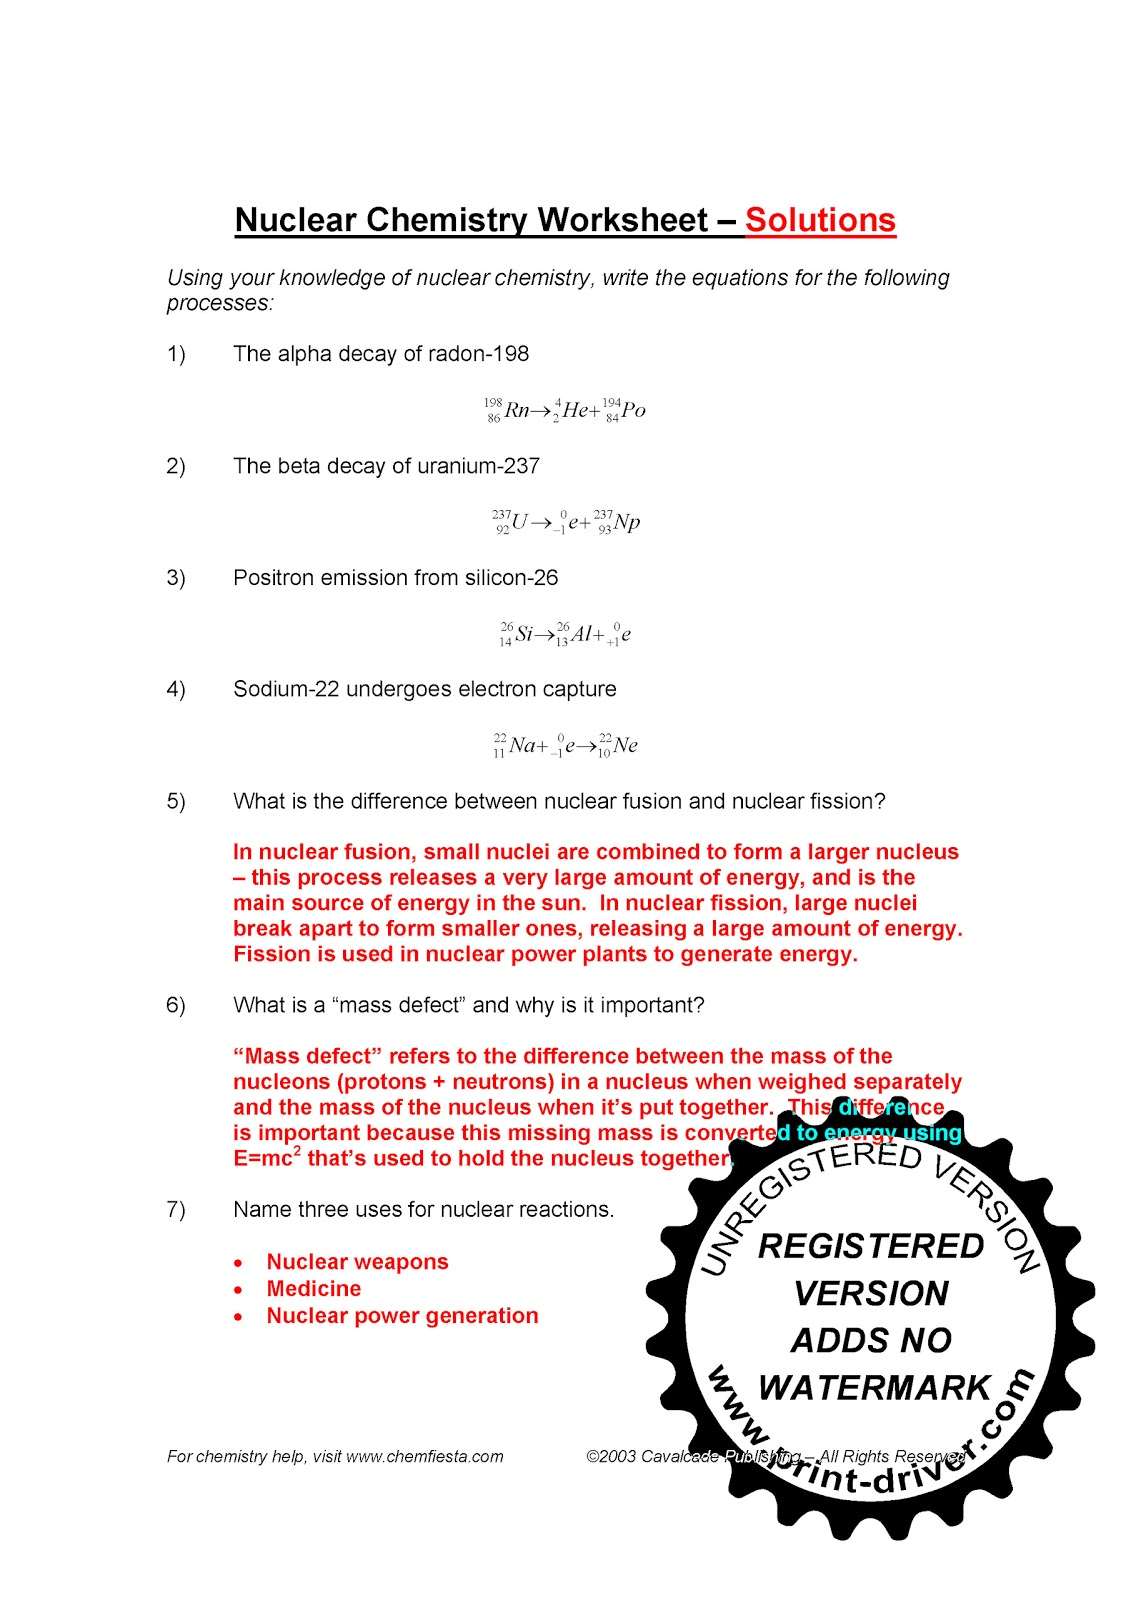 Worksheet Nuclear Chemistry Worksheet mr zehners chemistry class november 2010 note the difference between positron emmision 1e and beta decay 1e